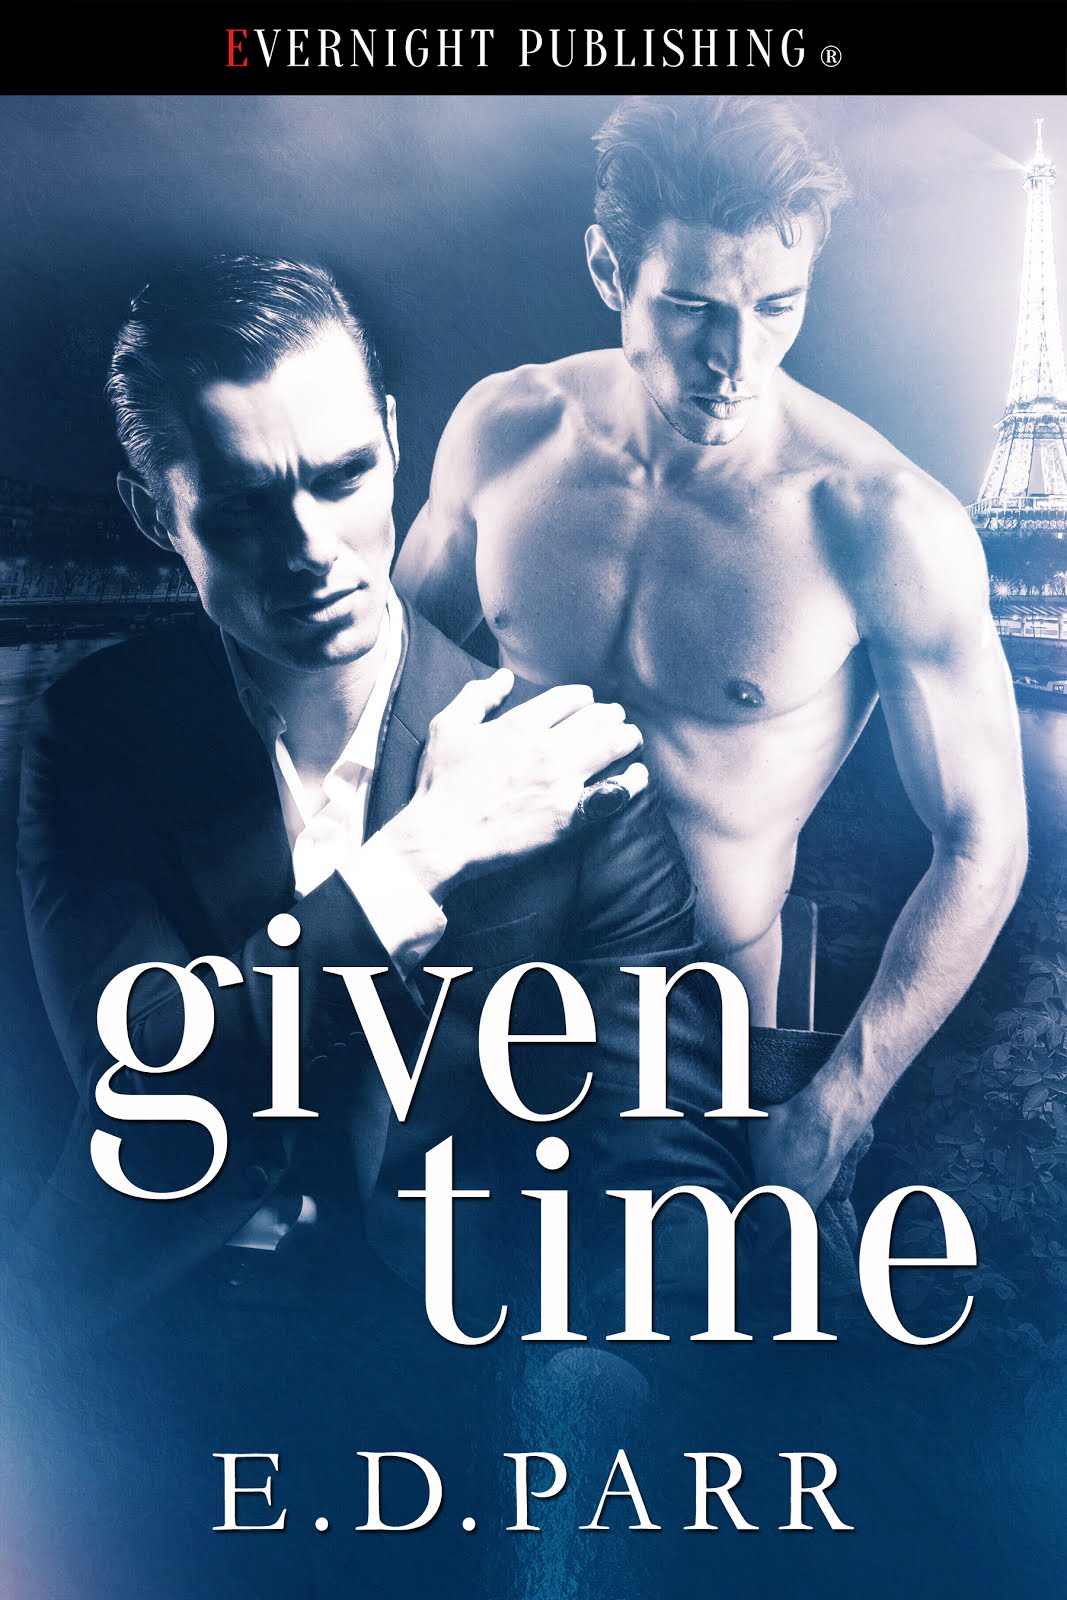 Read an excerpt from Given Time